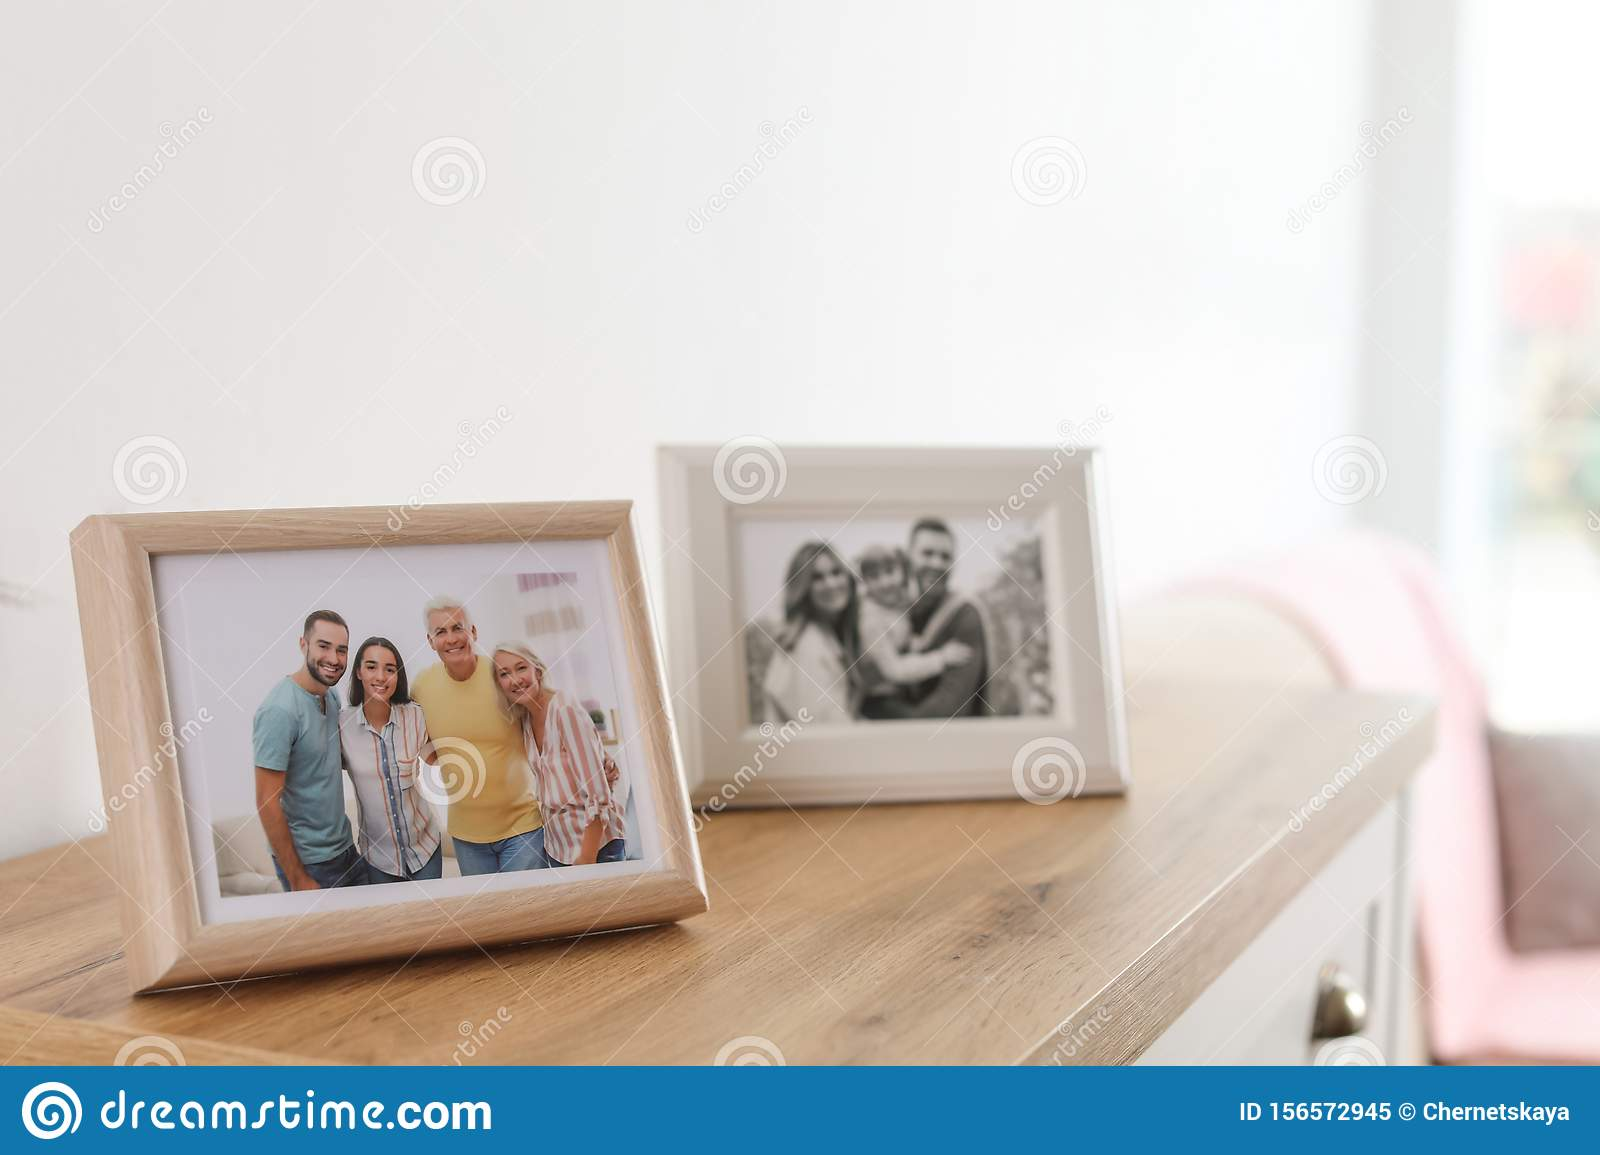 Family portraits in frames on cabinet